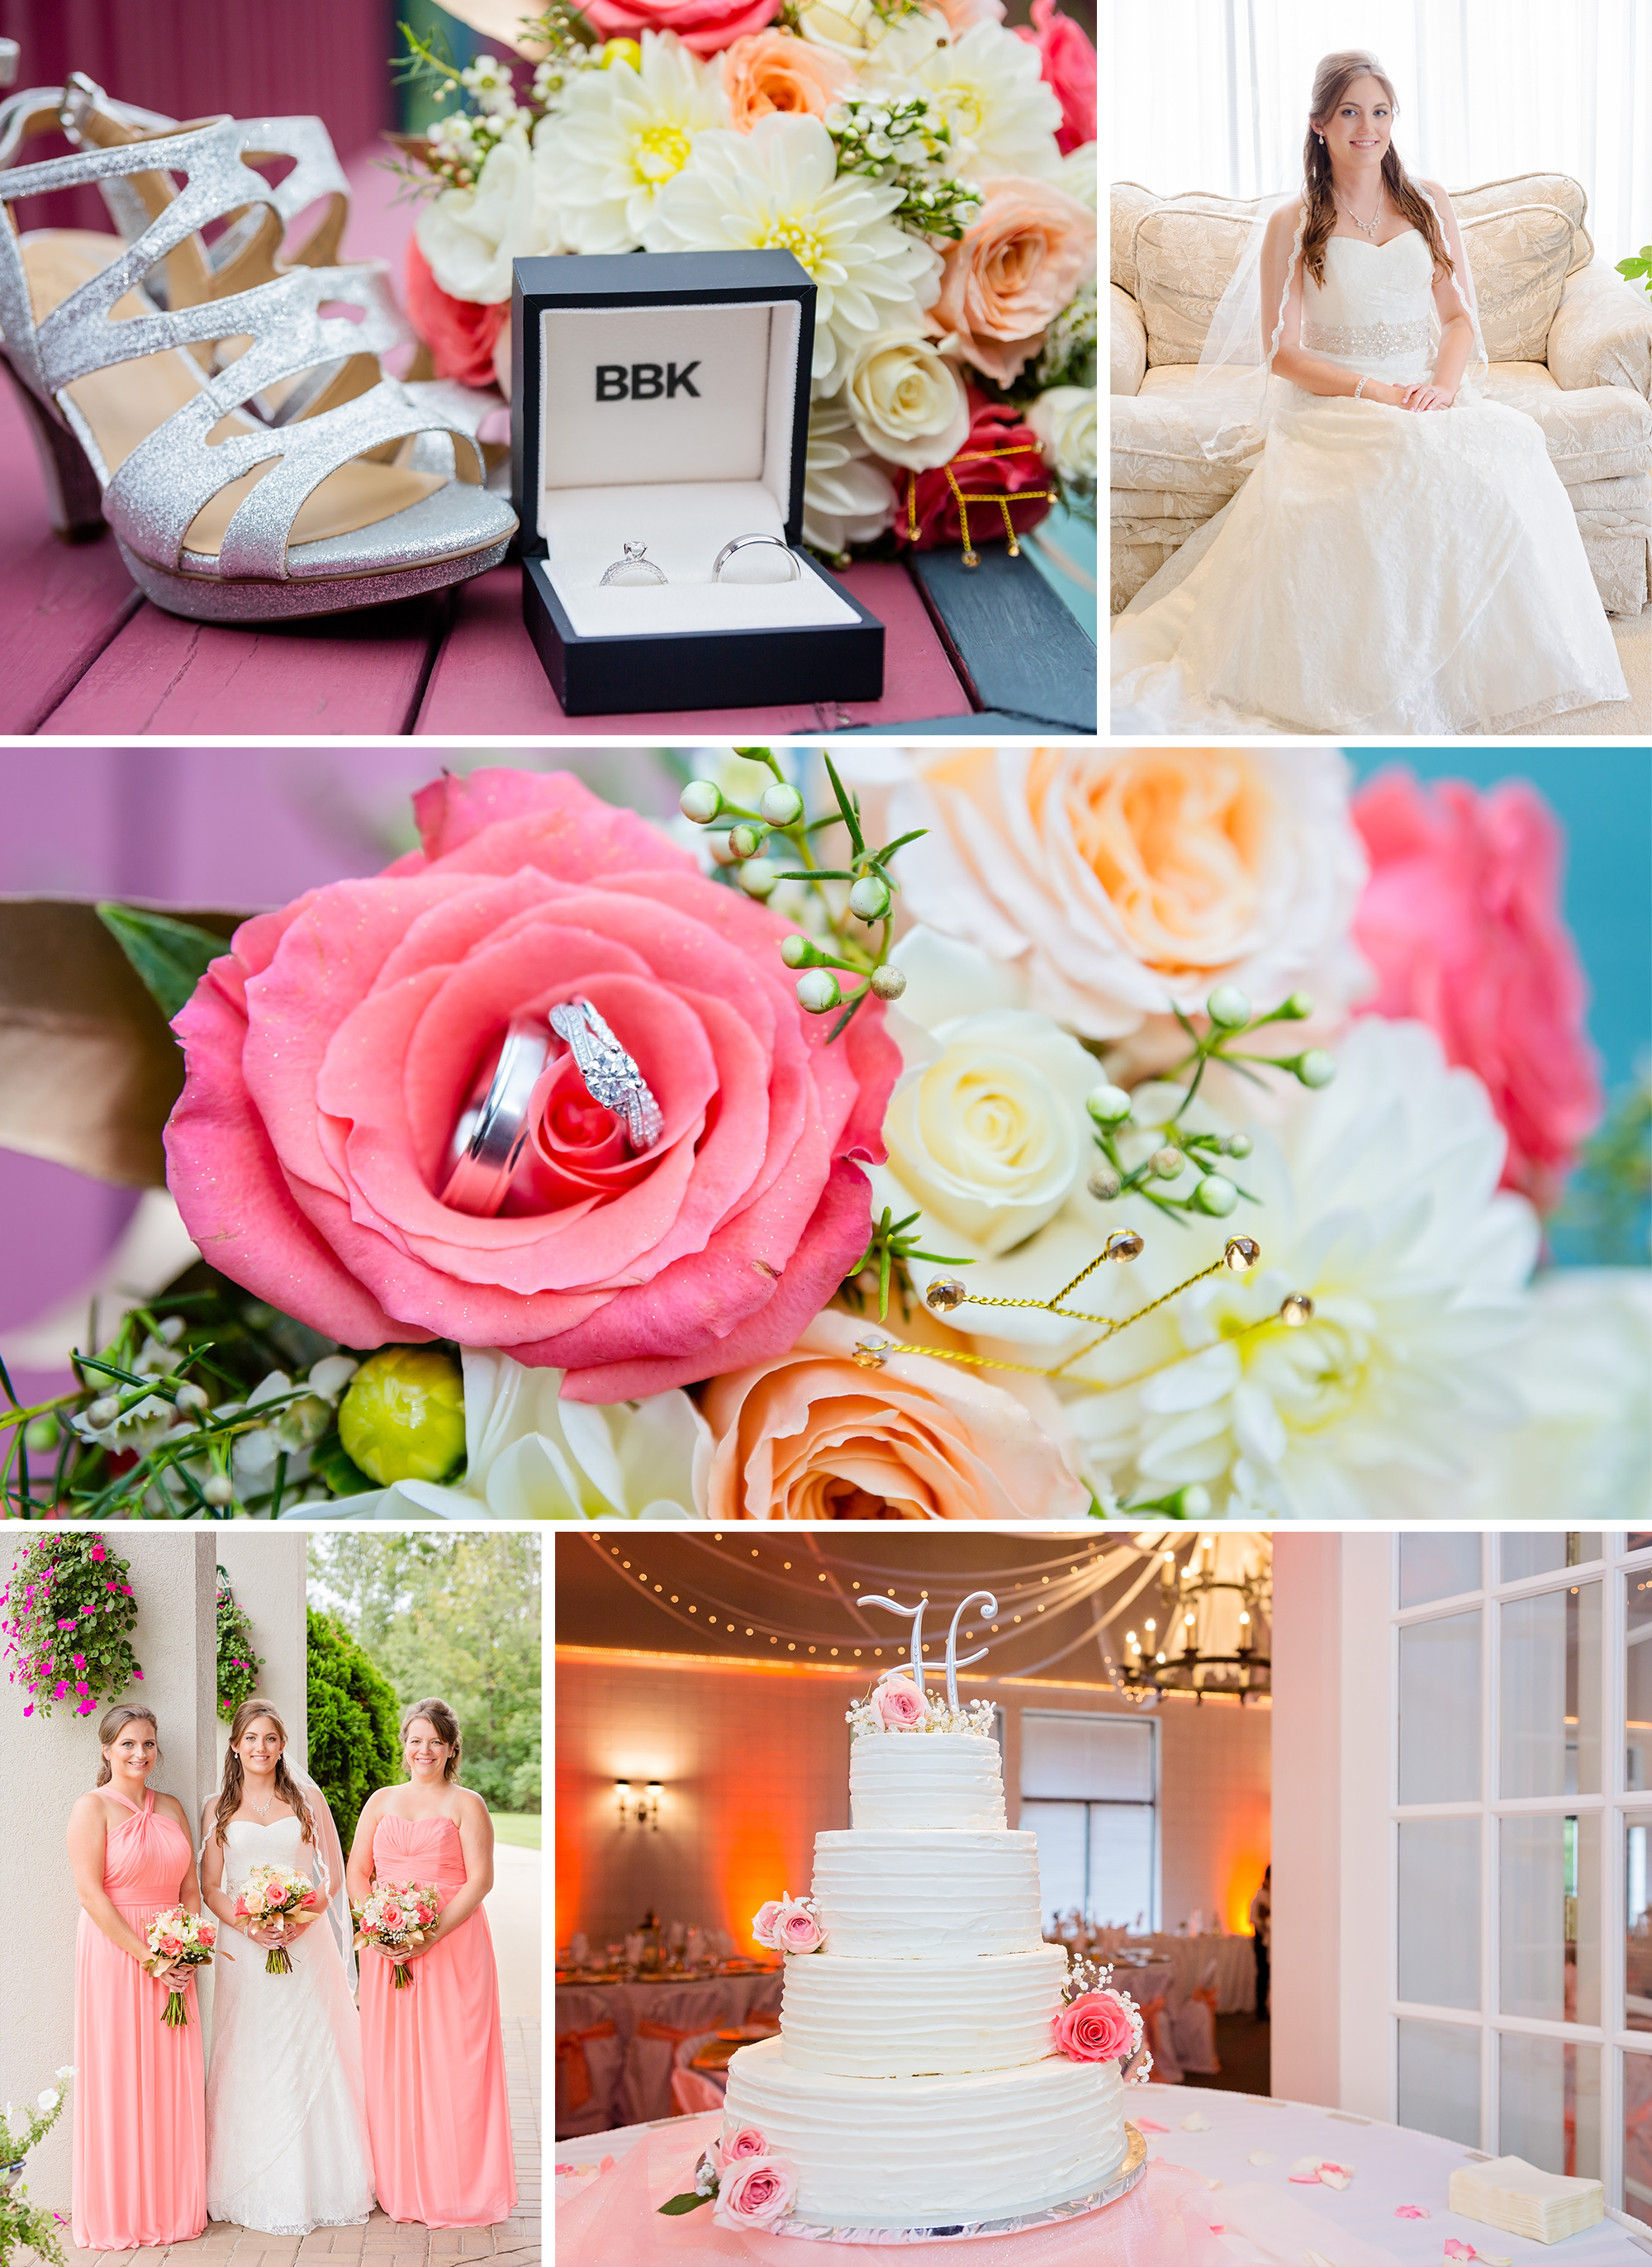 Hart_wedding_blogCollage-3.jpg